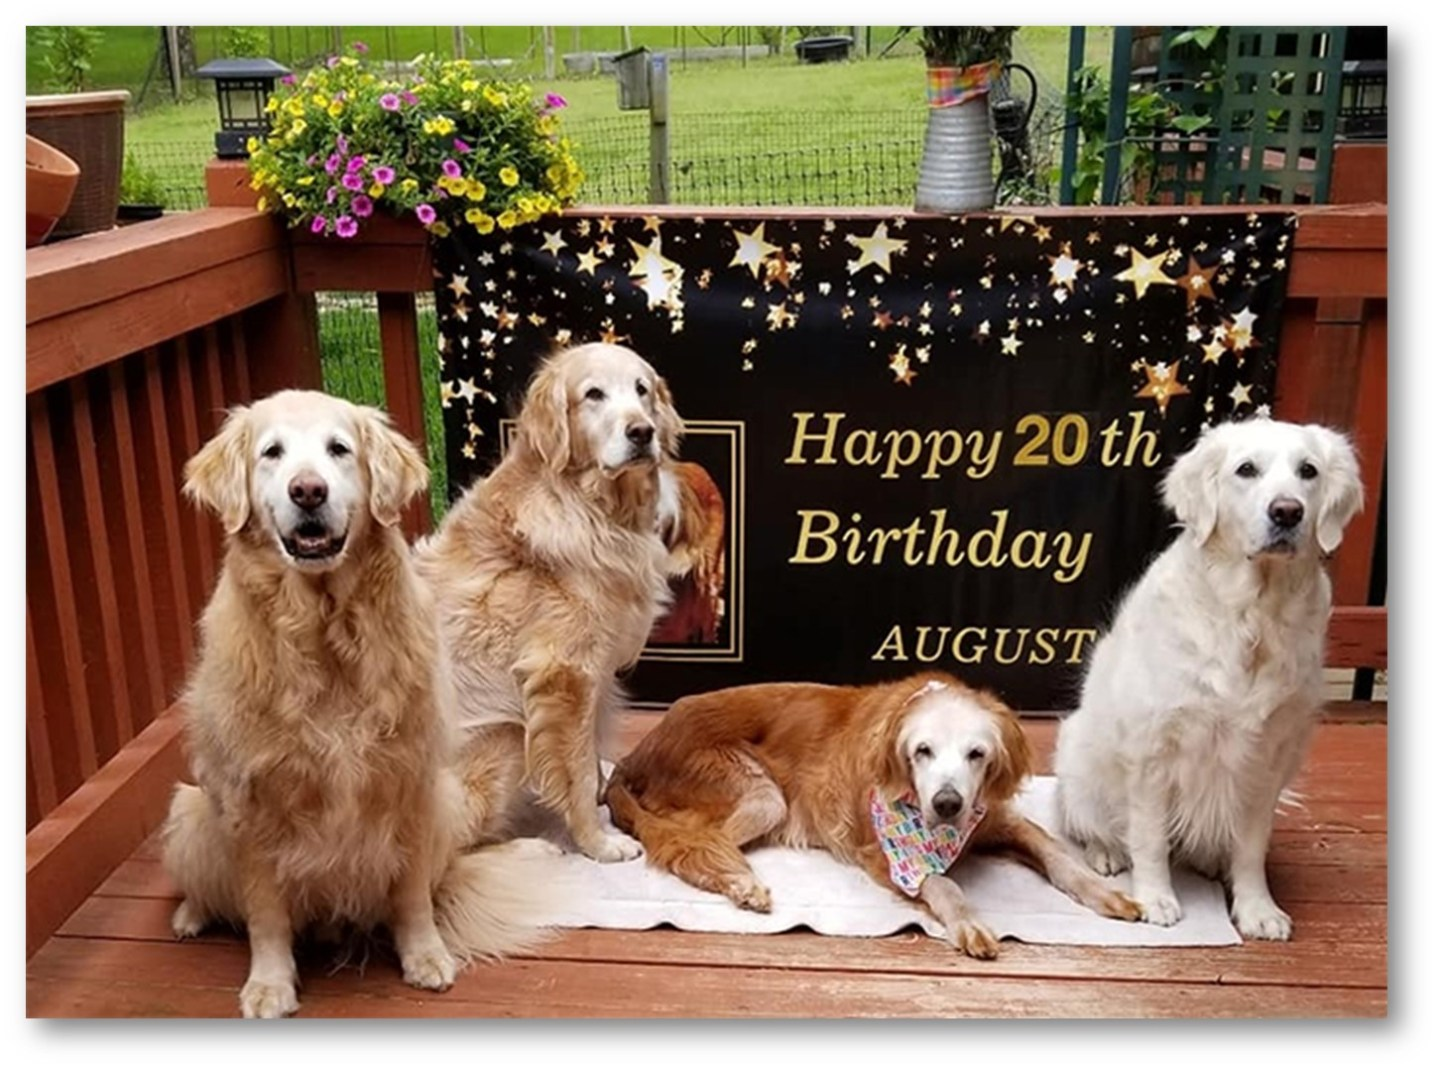 OLDEST LIVING GOLDEN RETRIEVER